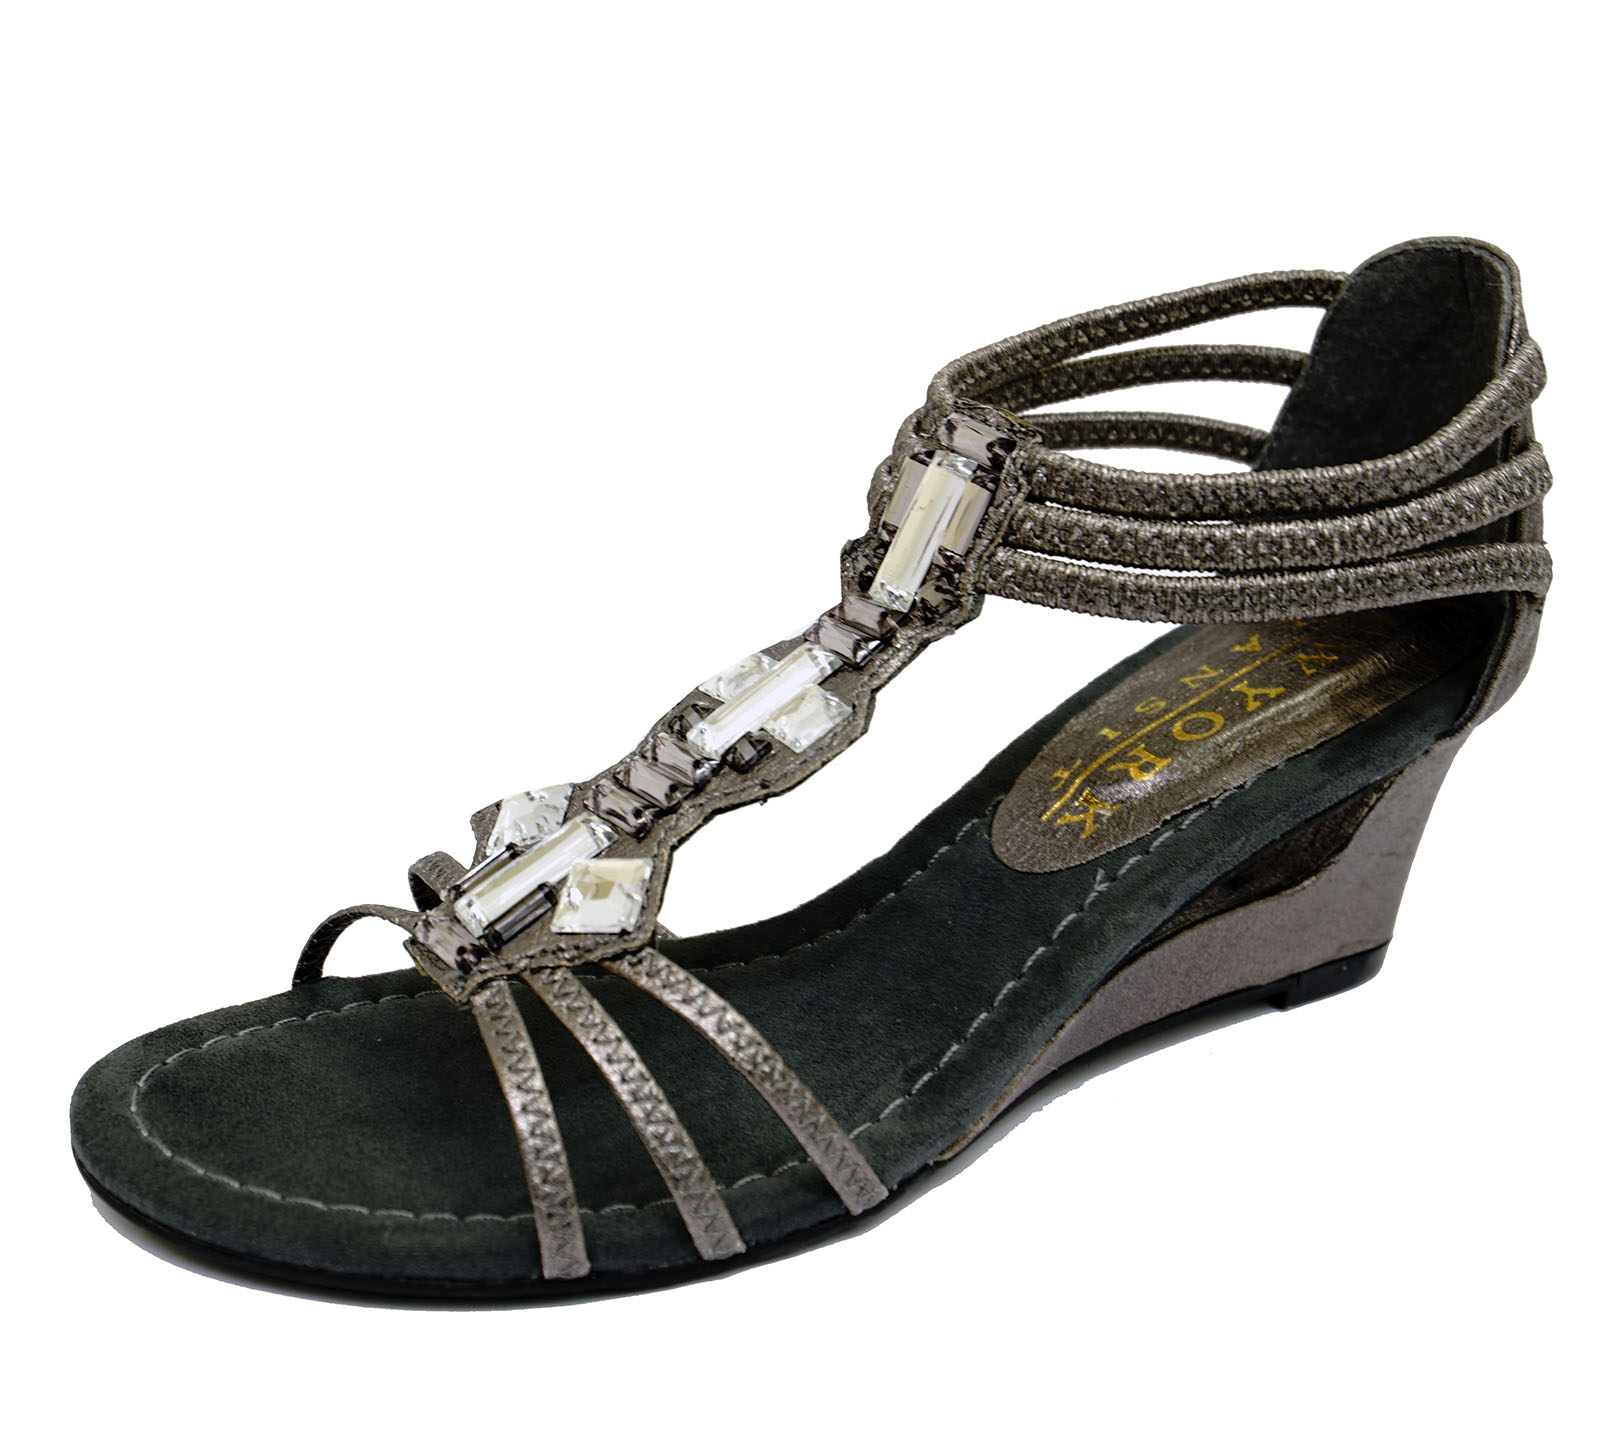 94dc399ff79f Sentinel ladies pewter wedges gladiator comfy elastic open toe strappy  sandals shoes jpg 1600x1433 Pewter wedges